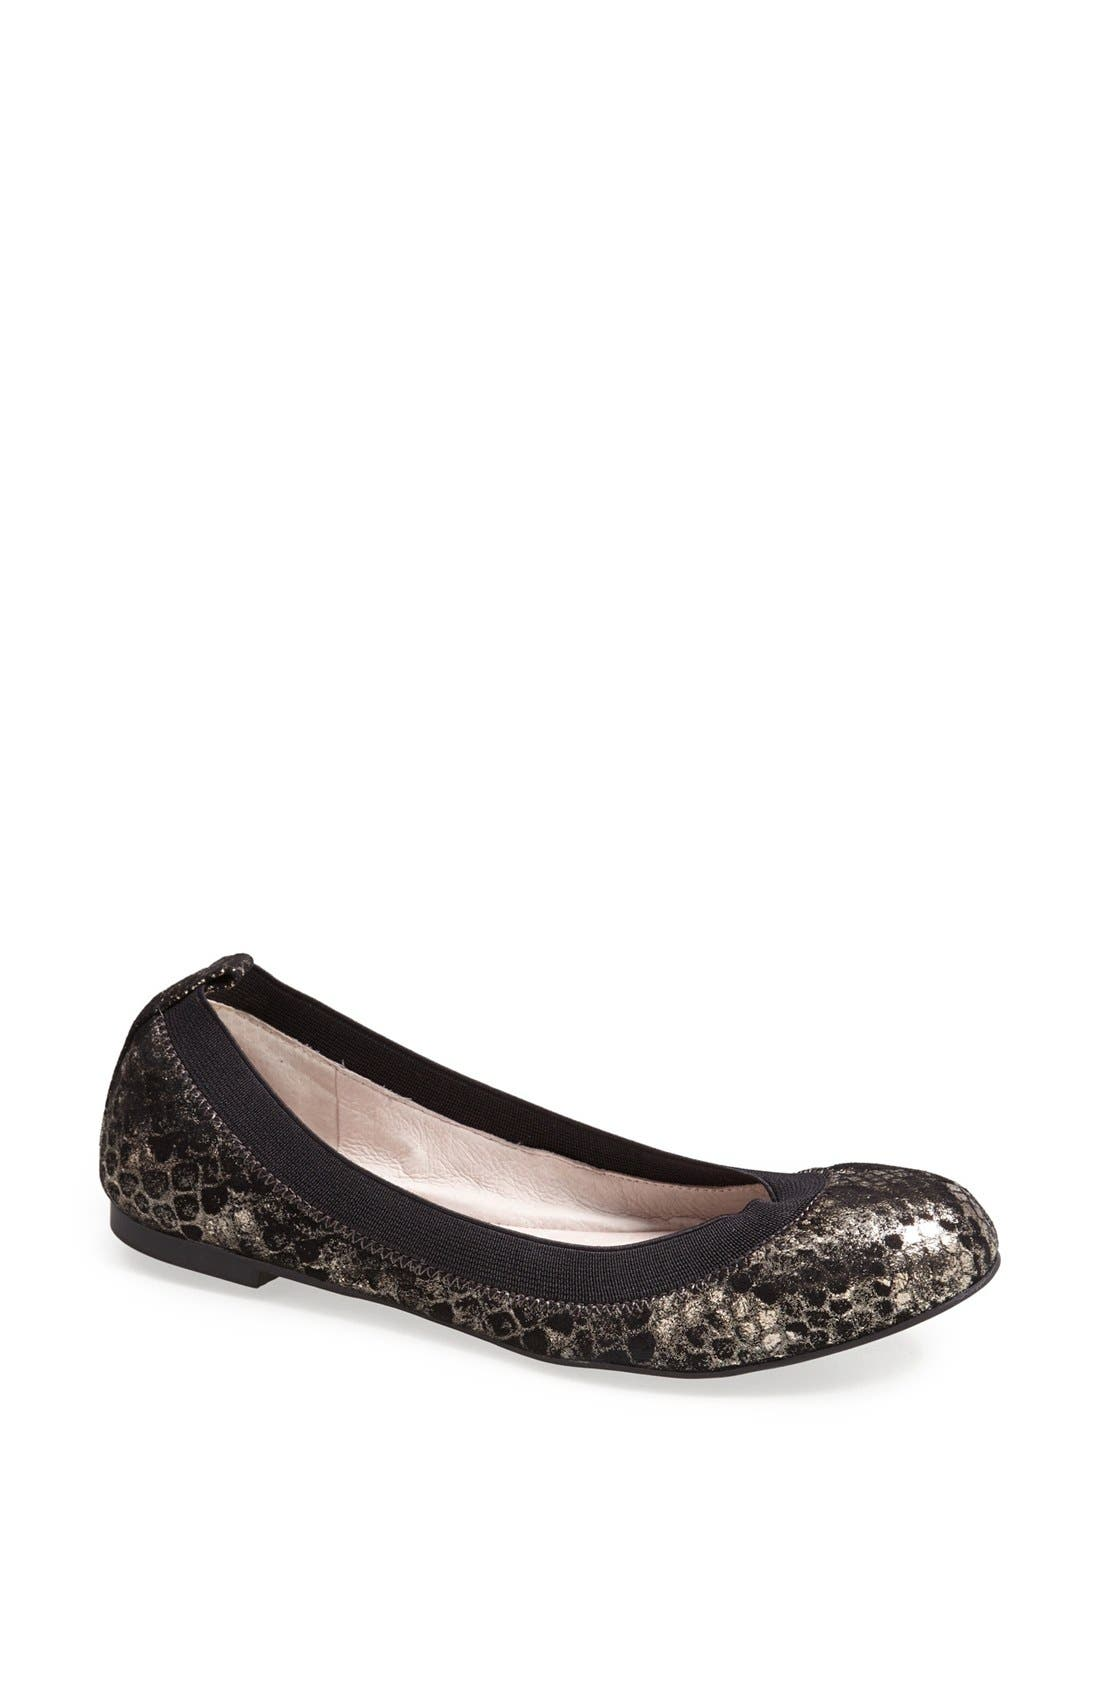 Main Image - Vince Camuto 'Jorra' Leather Flat